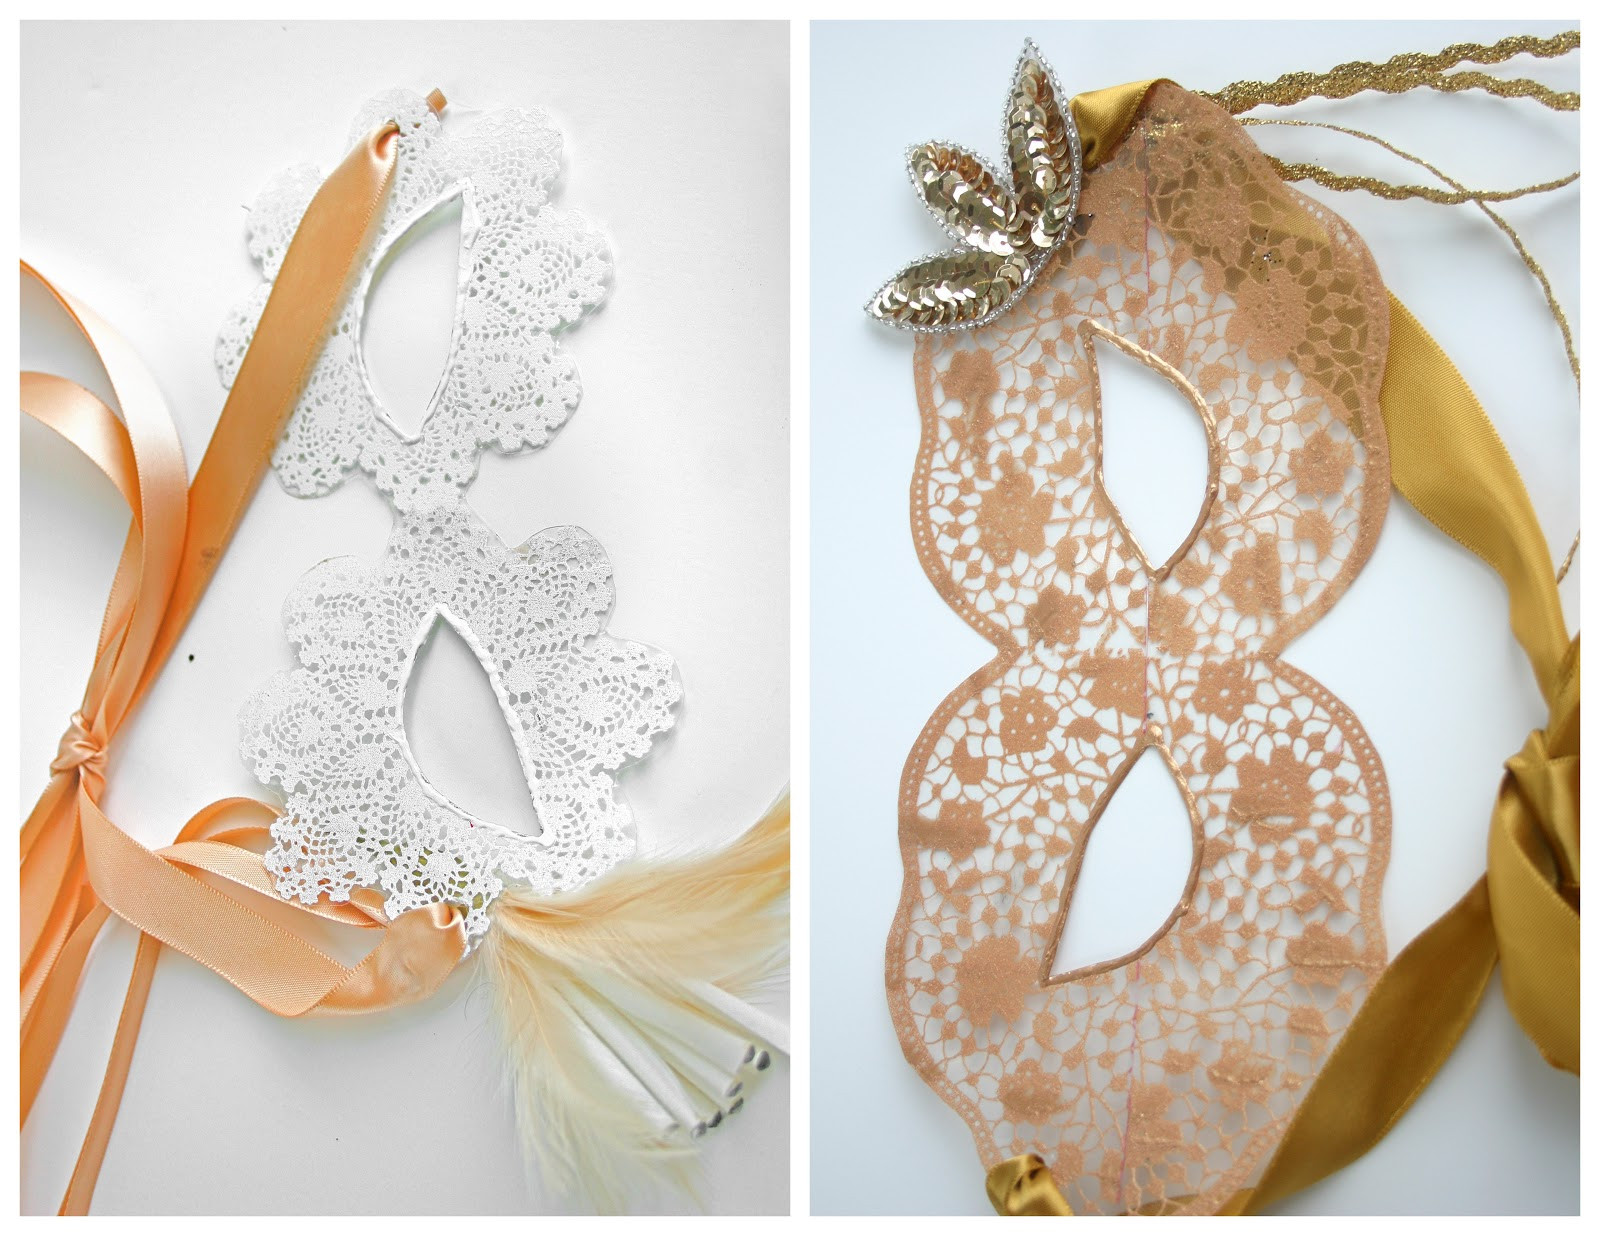 Best ideas about DIY Lace Masquerade Mask . Save or Pin Grosgrain DIY Paintable Faux Lace Masquerade Masks Now.